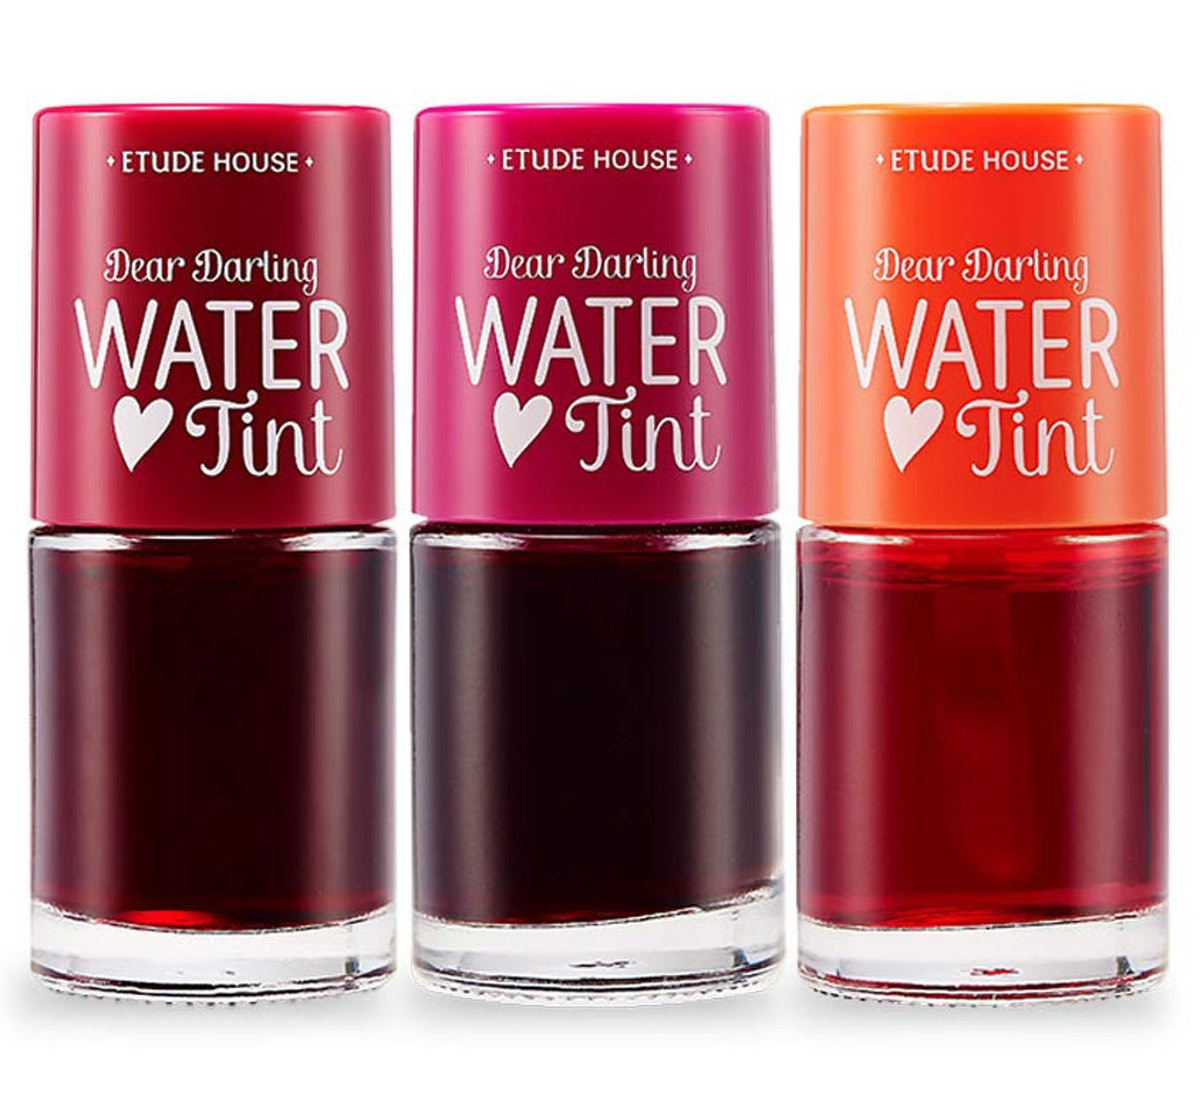 ETUDE HOUSE Dear Darling Water Tint 3 Color Set (3-Pack)